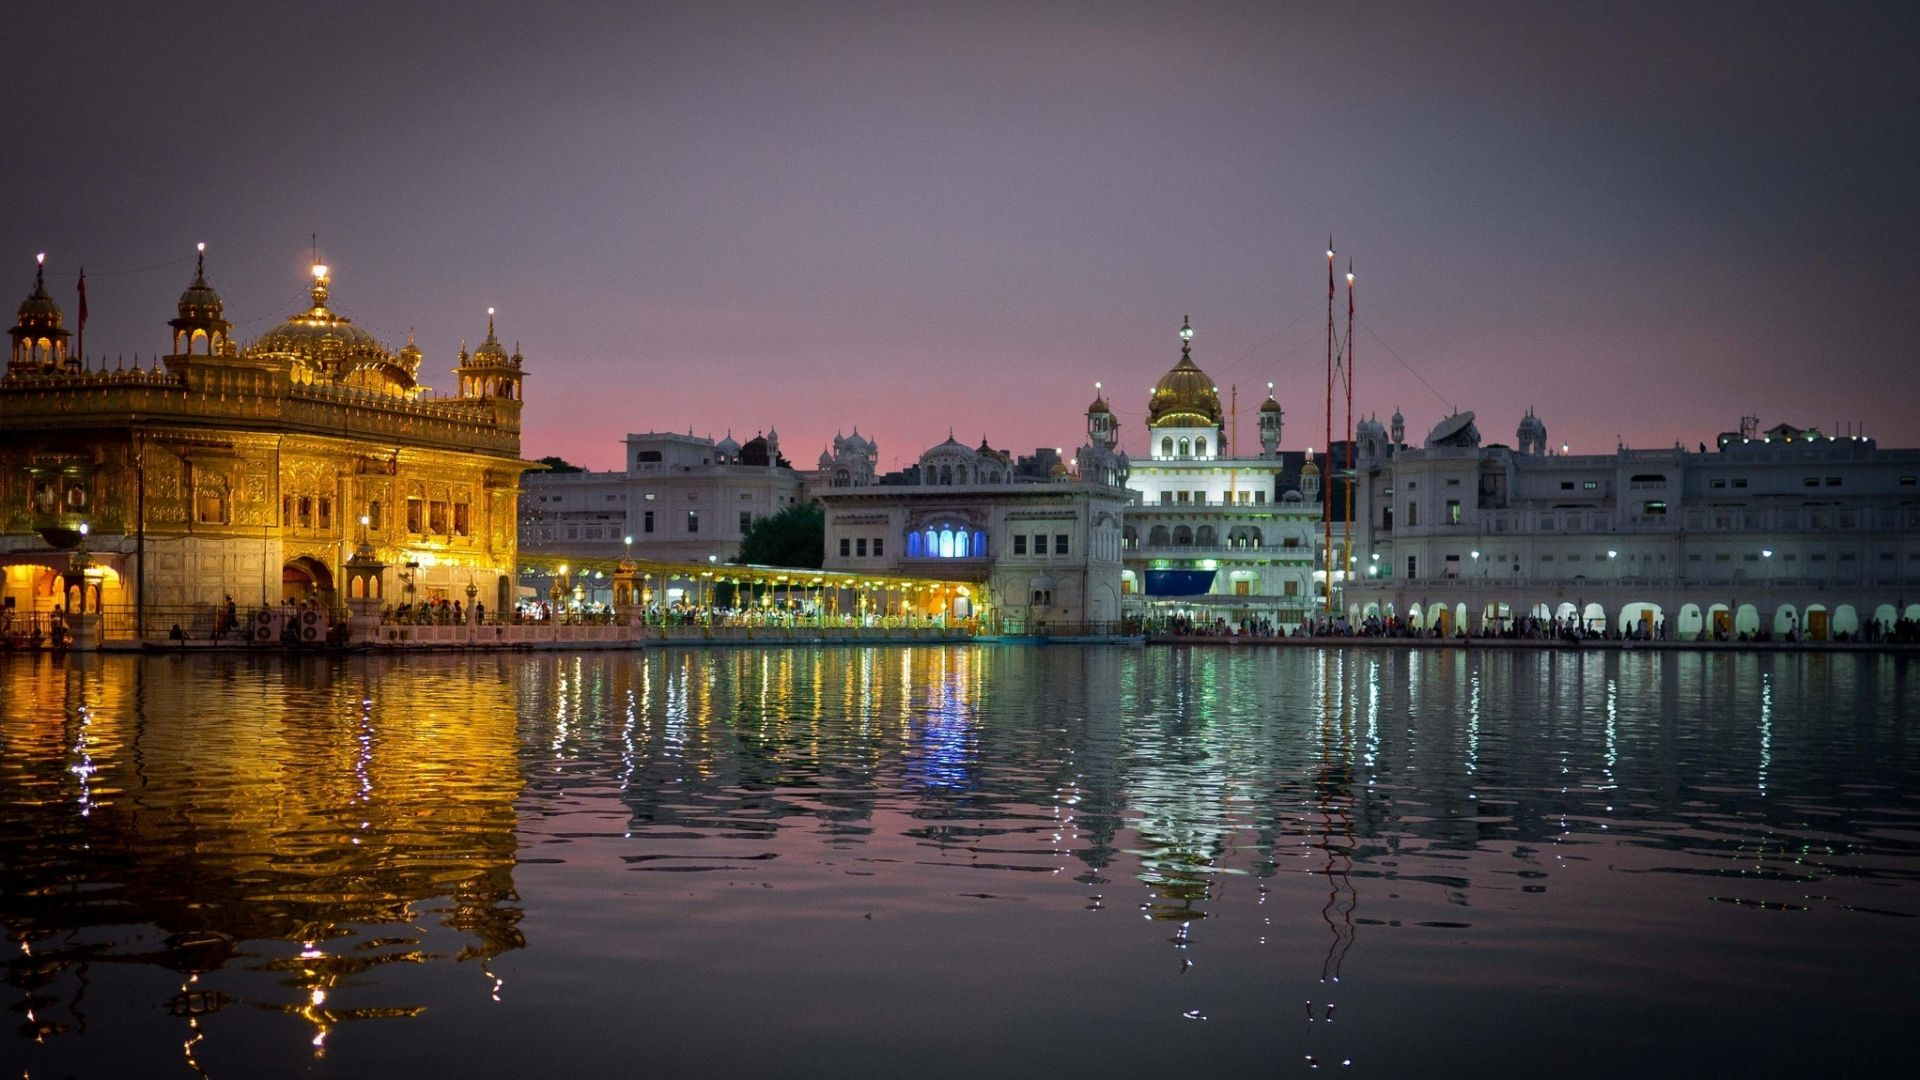 Wallpaper amritsar gurdwara sikh harmandir sahib - Taj mahal screensaver free download ...